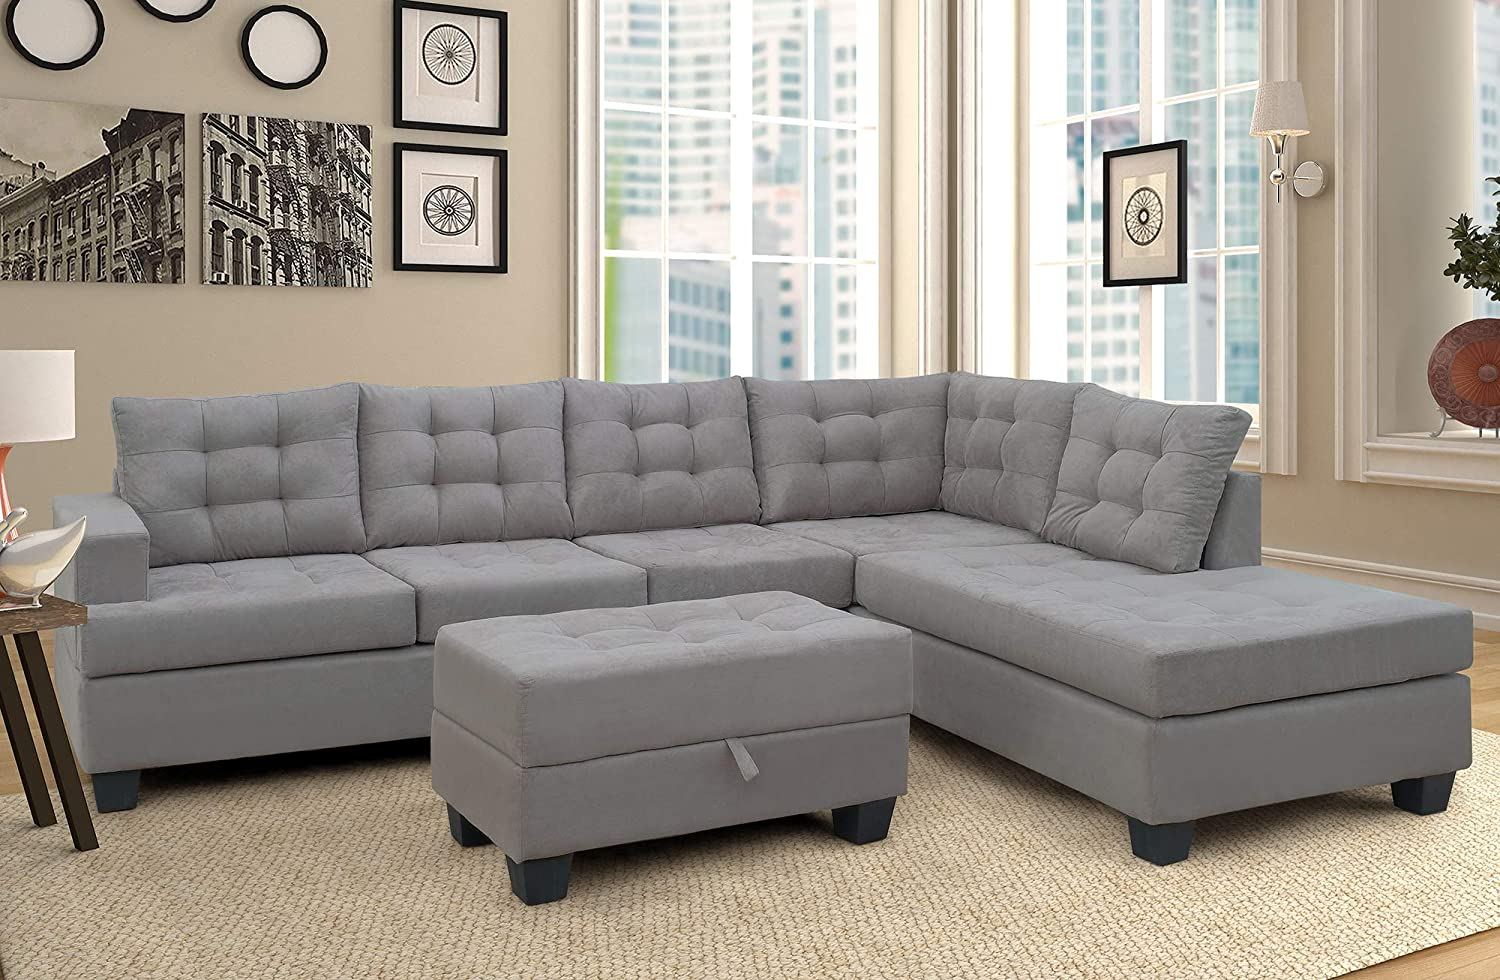 Amazon Com Merax Sectional Sofa With Chaise And Ottoman 3 Piece Sofa For Living Room Furniture Gray Furniture Decor